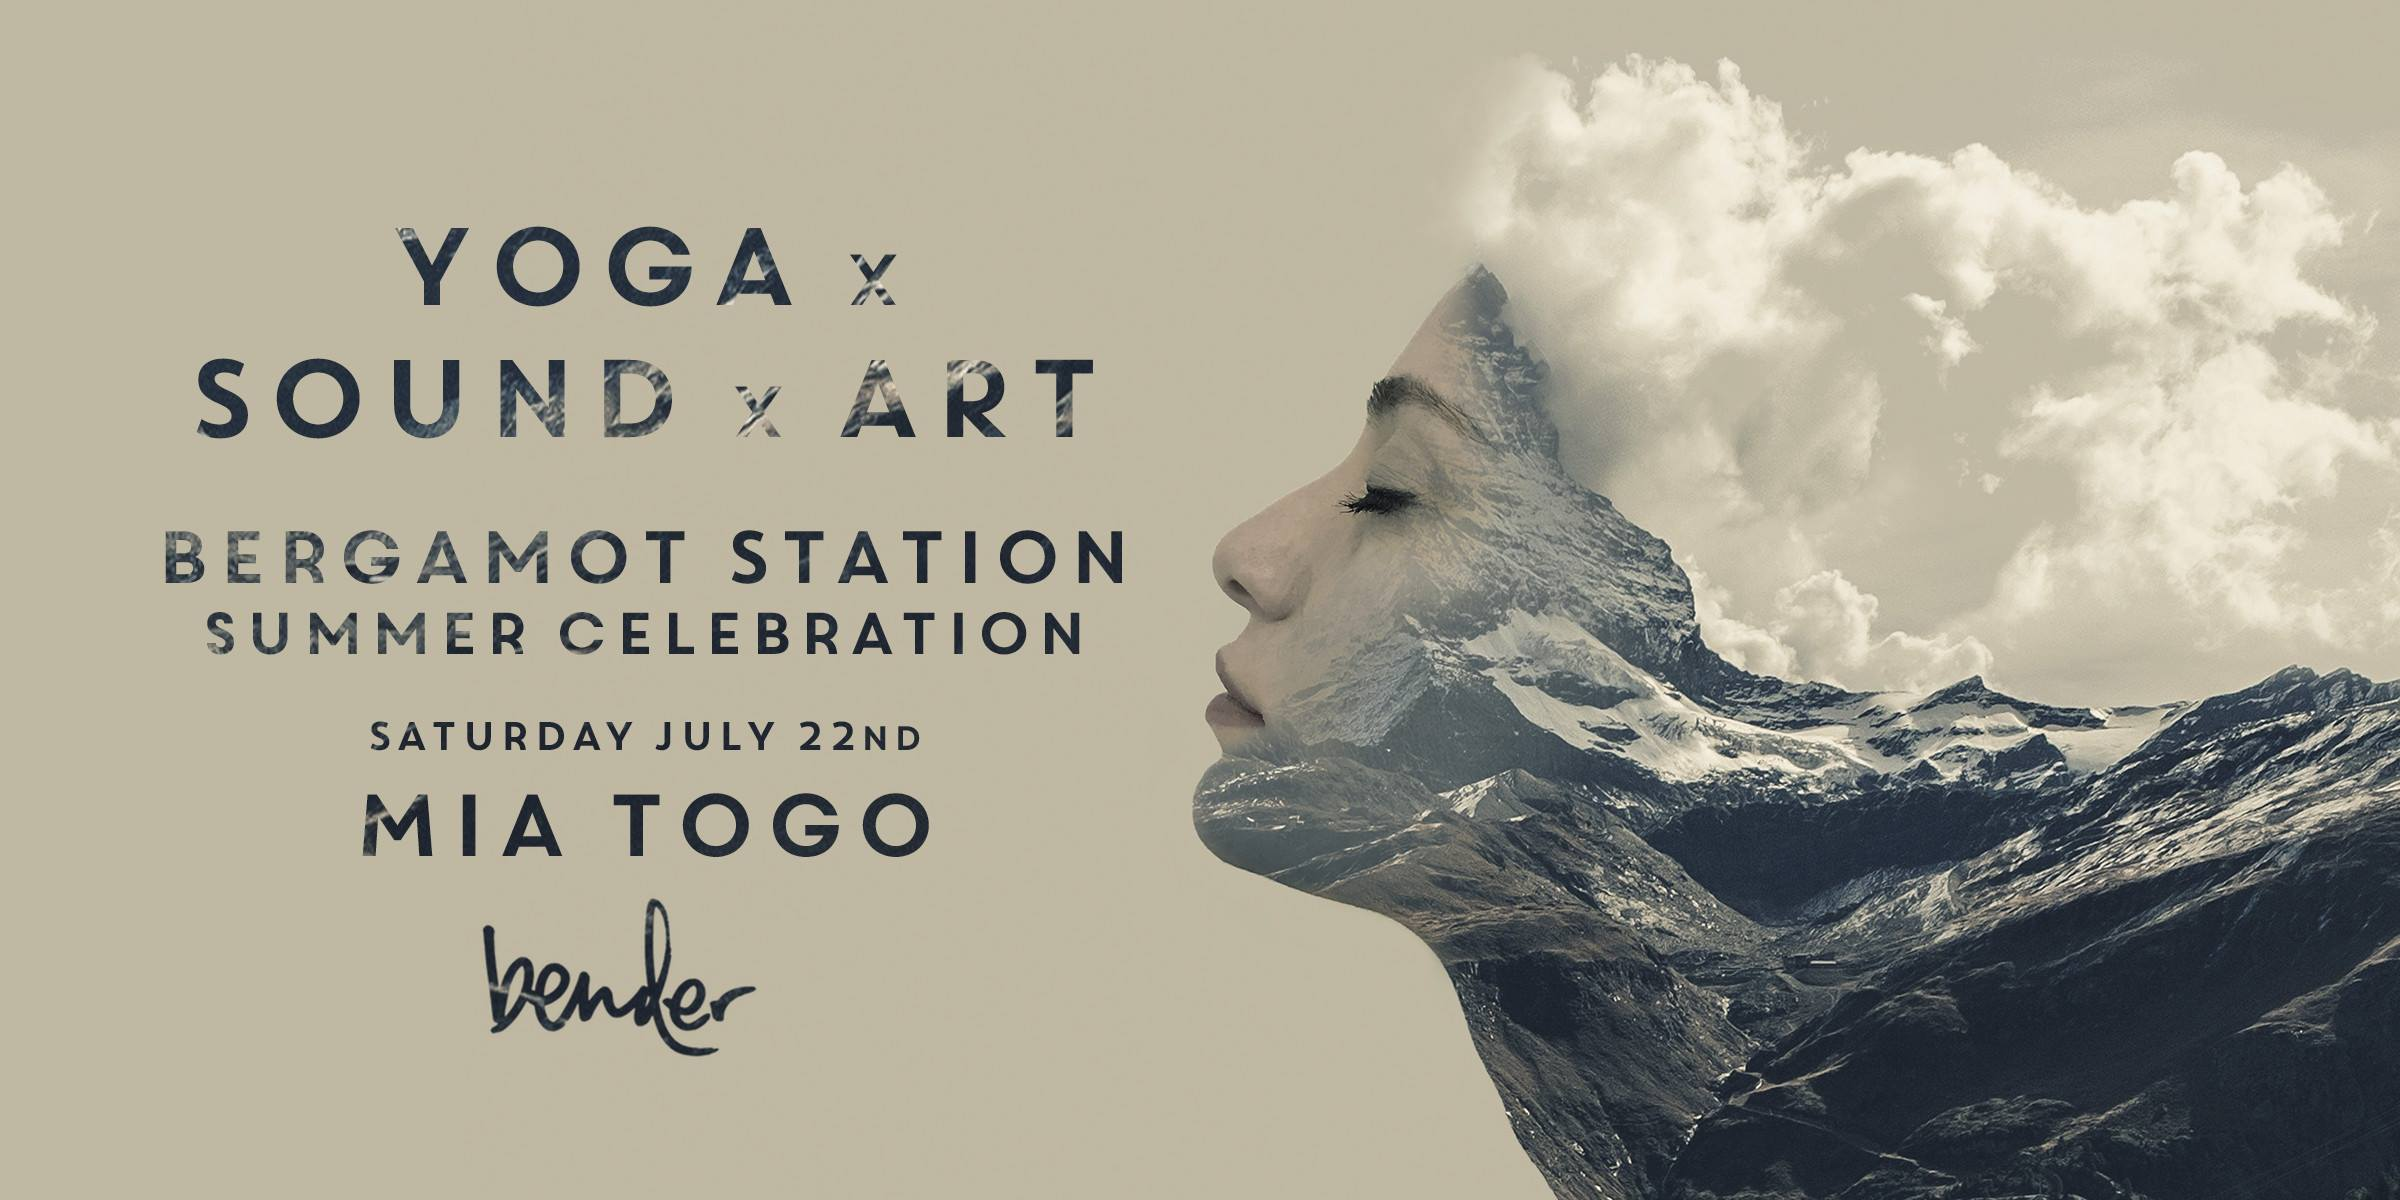 Yoga Sound Art